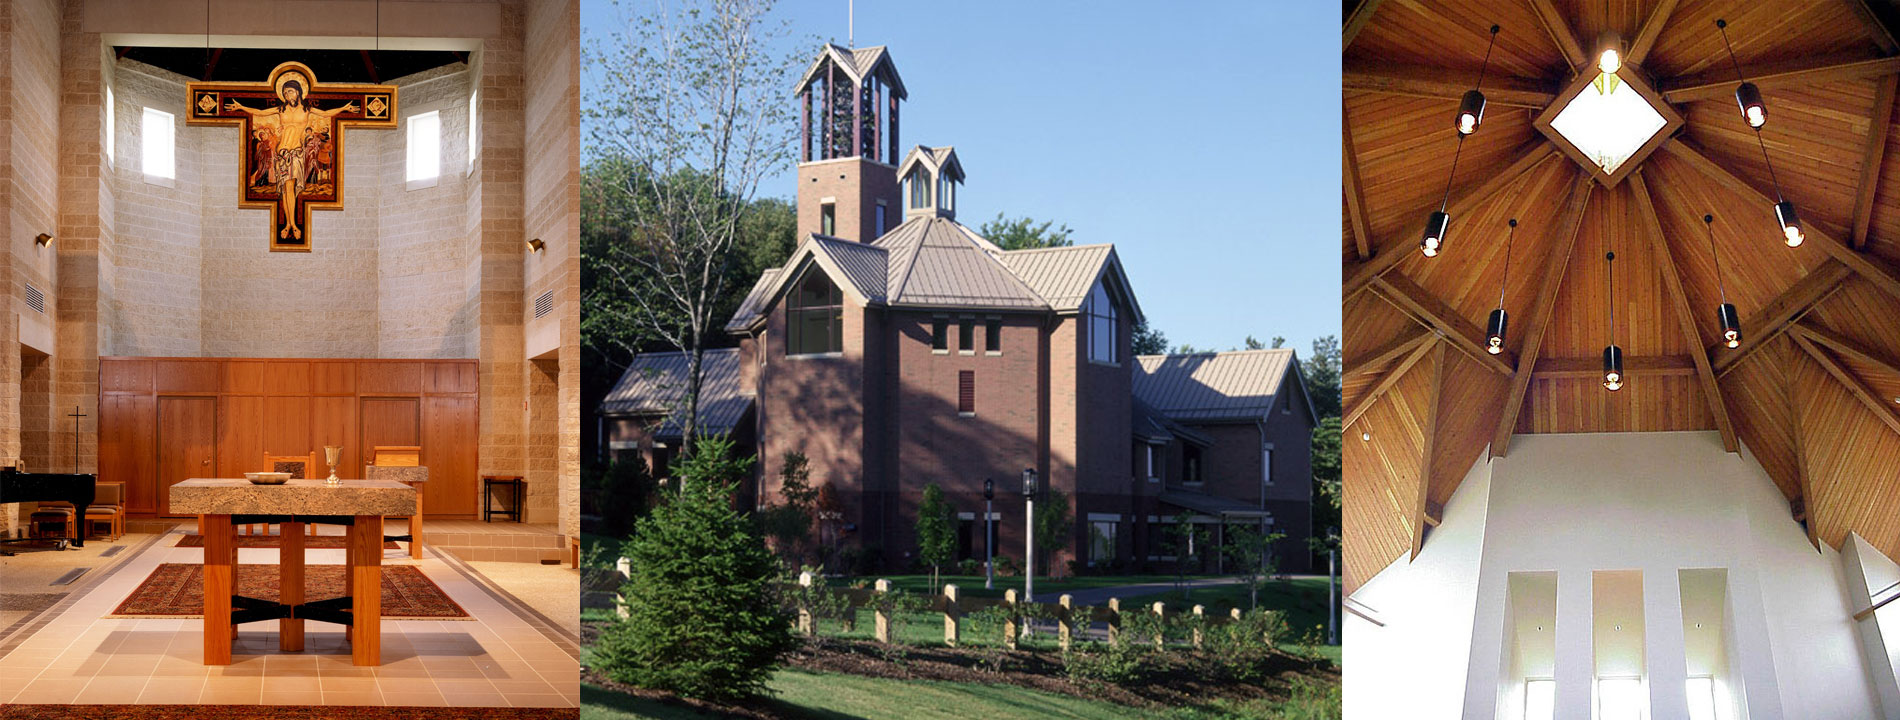 Penn State Erie, The Behrend College, Chapel and Bell Tower